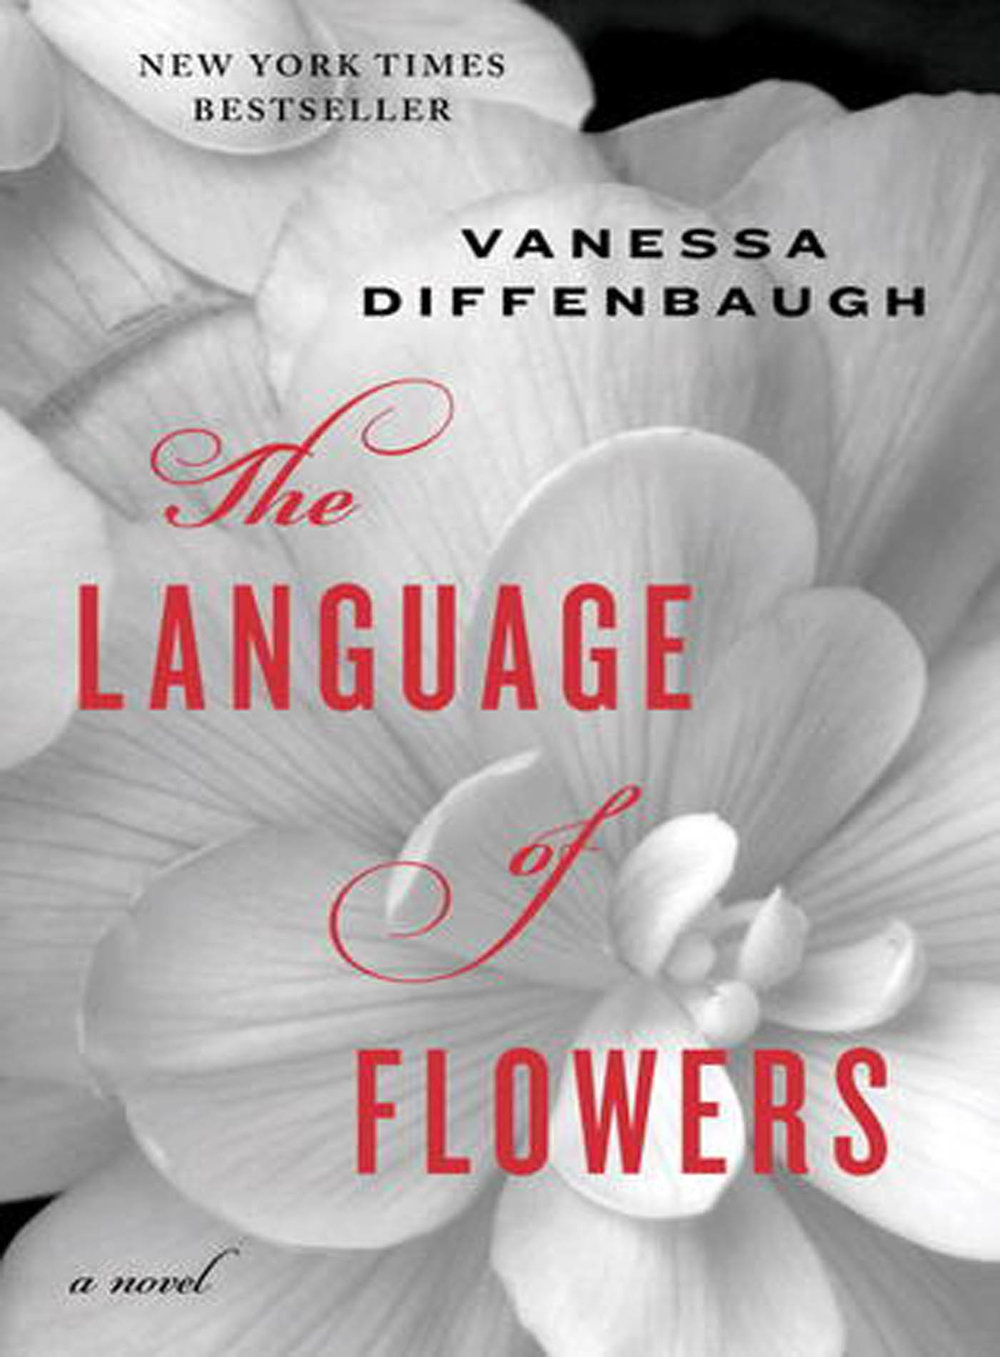 VanessaDiffenbaugh_Language.jpg